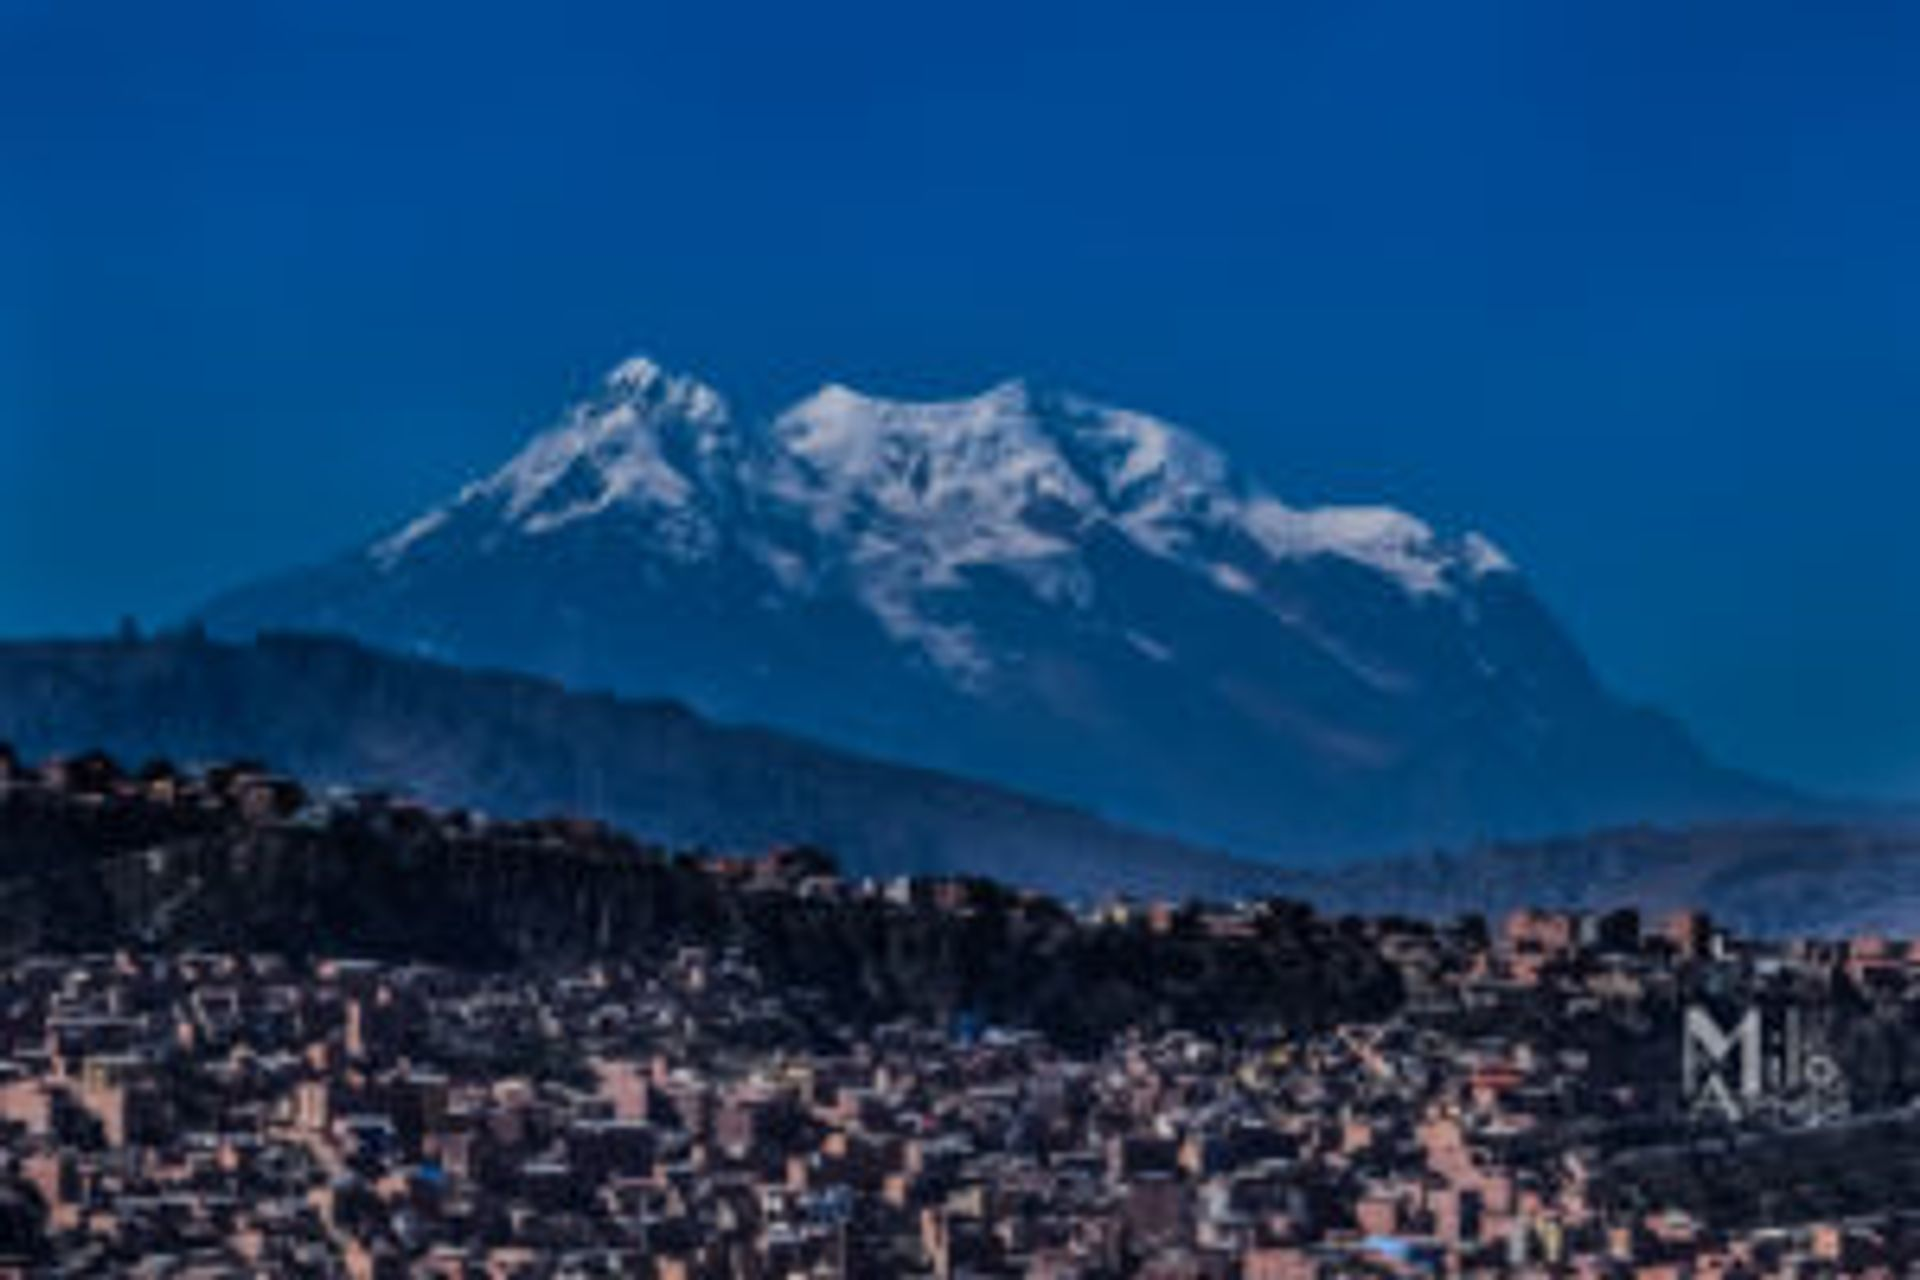 A snow-covered mountain above a large city.